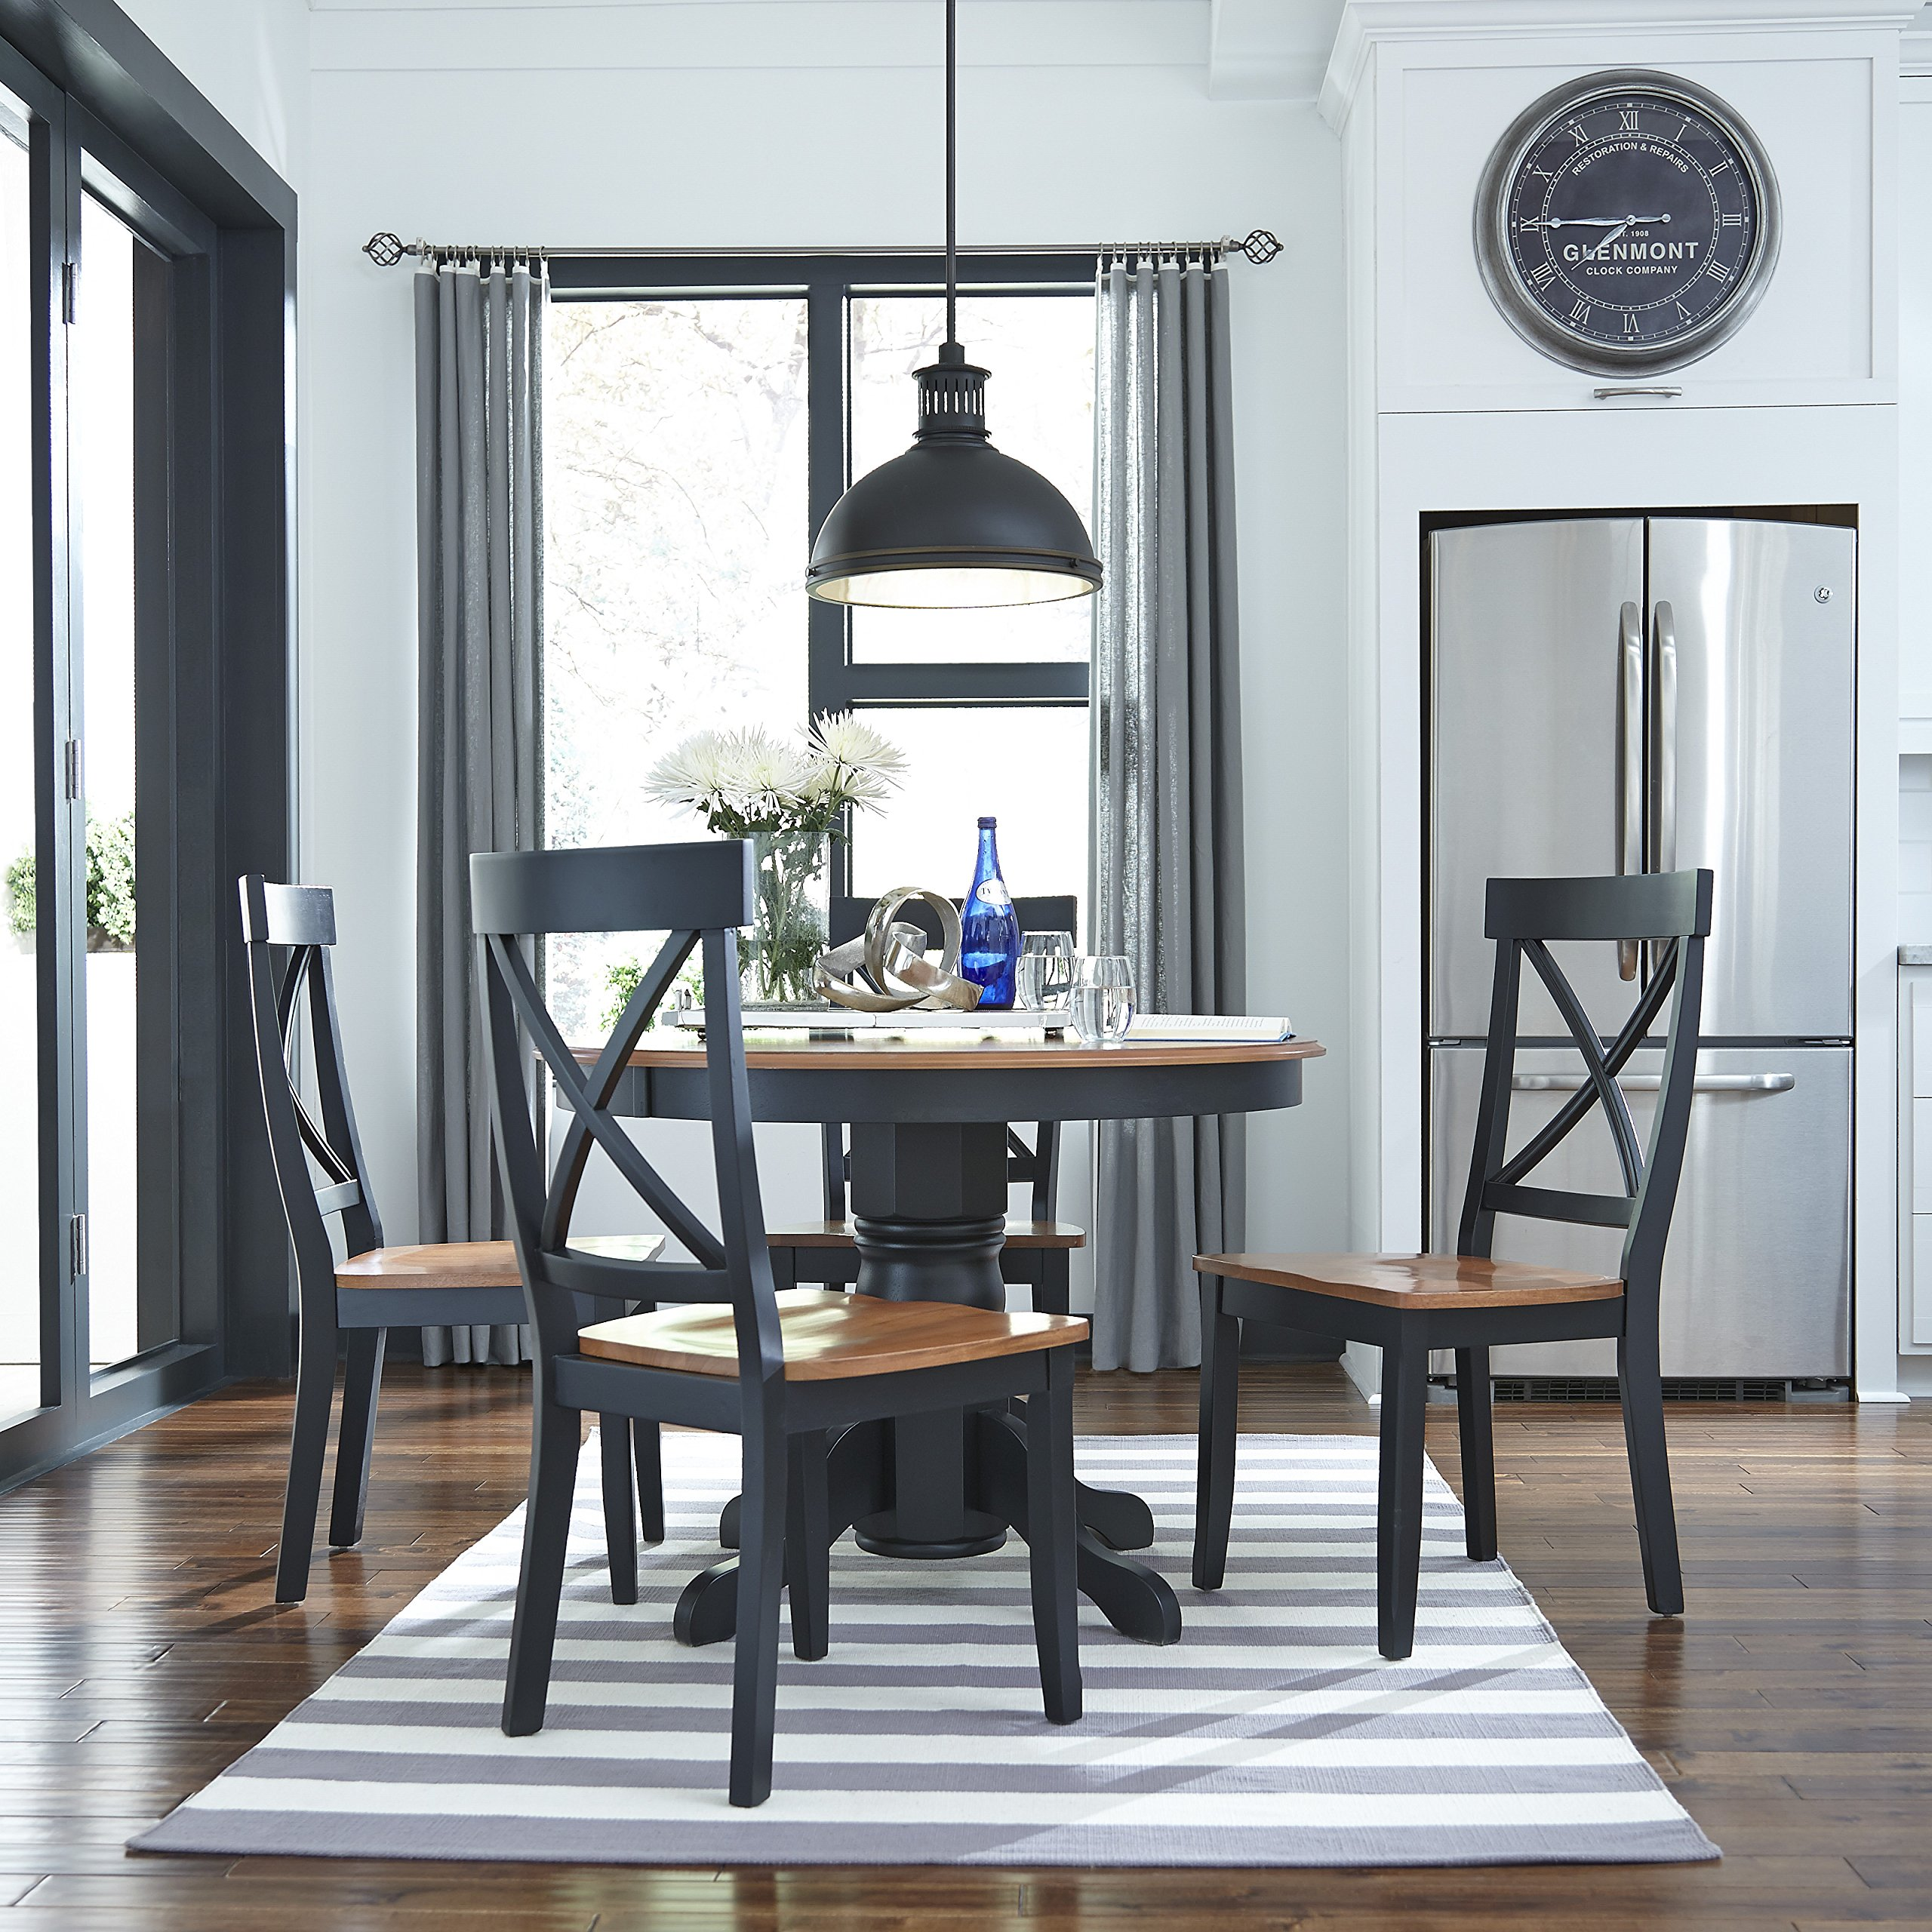 Home Styles 5168-30 Round Pedestal Dining Table, Black and Cottage Oak Finish by Home Styles (Image #2)